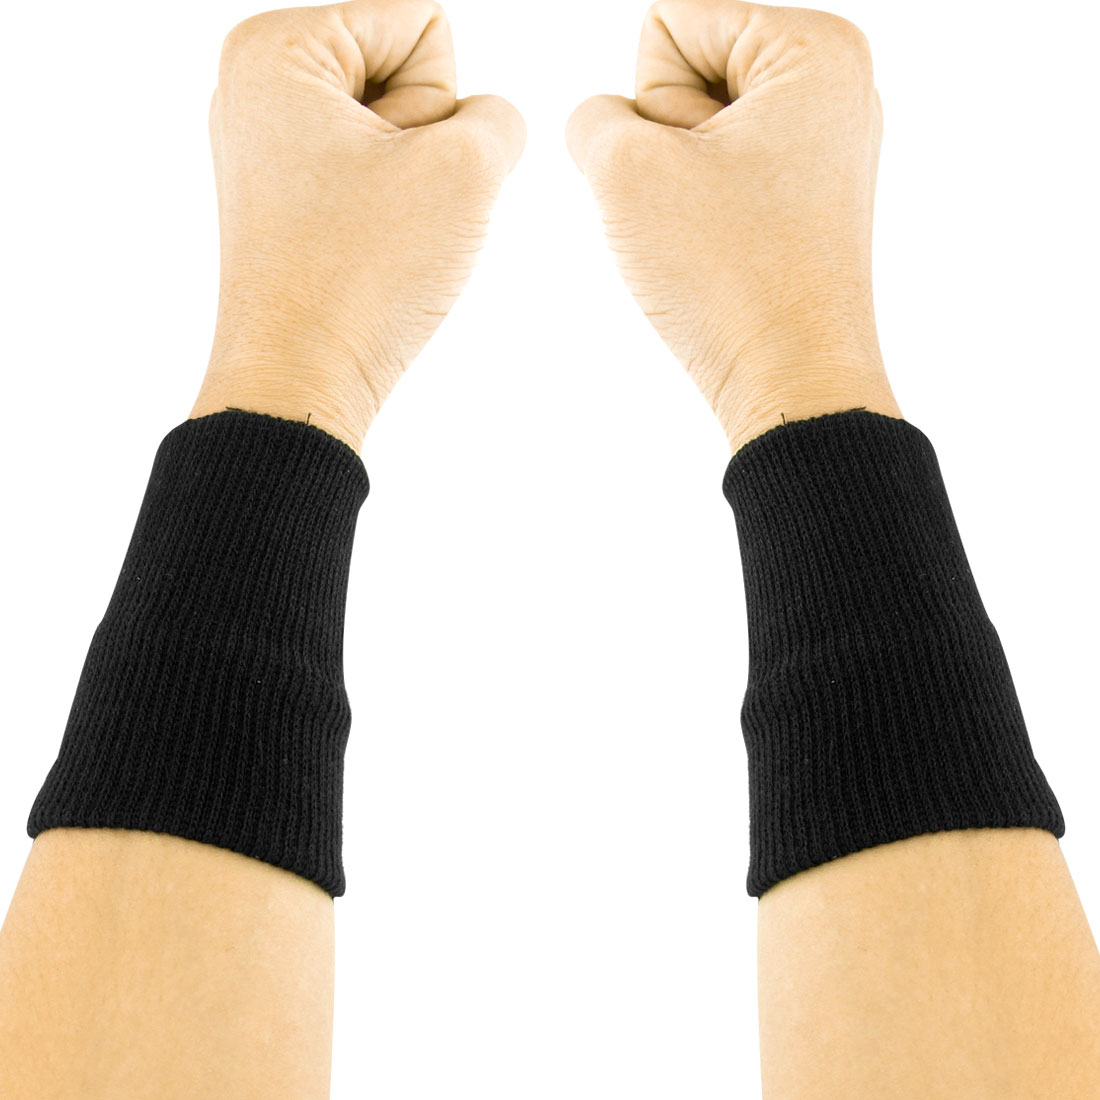 Pair Black Elastic Sports Athletic Protective Wrist Support Band